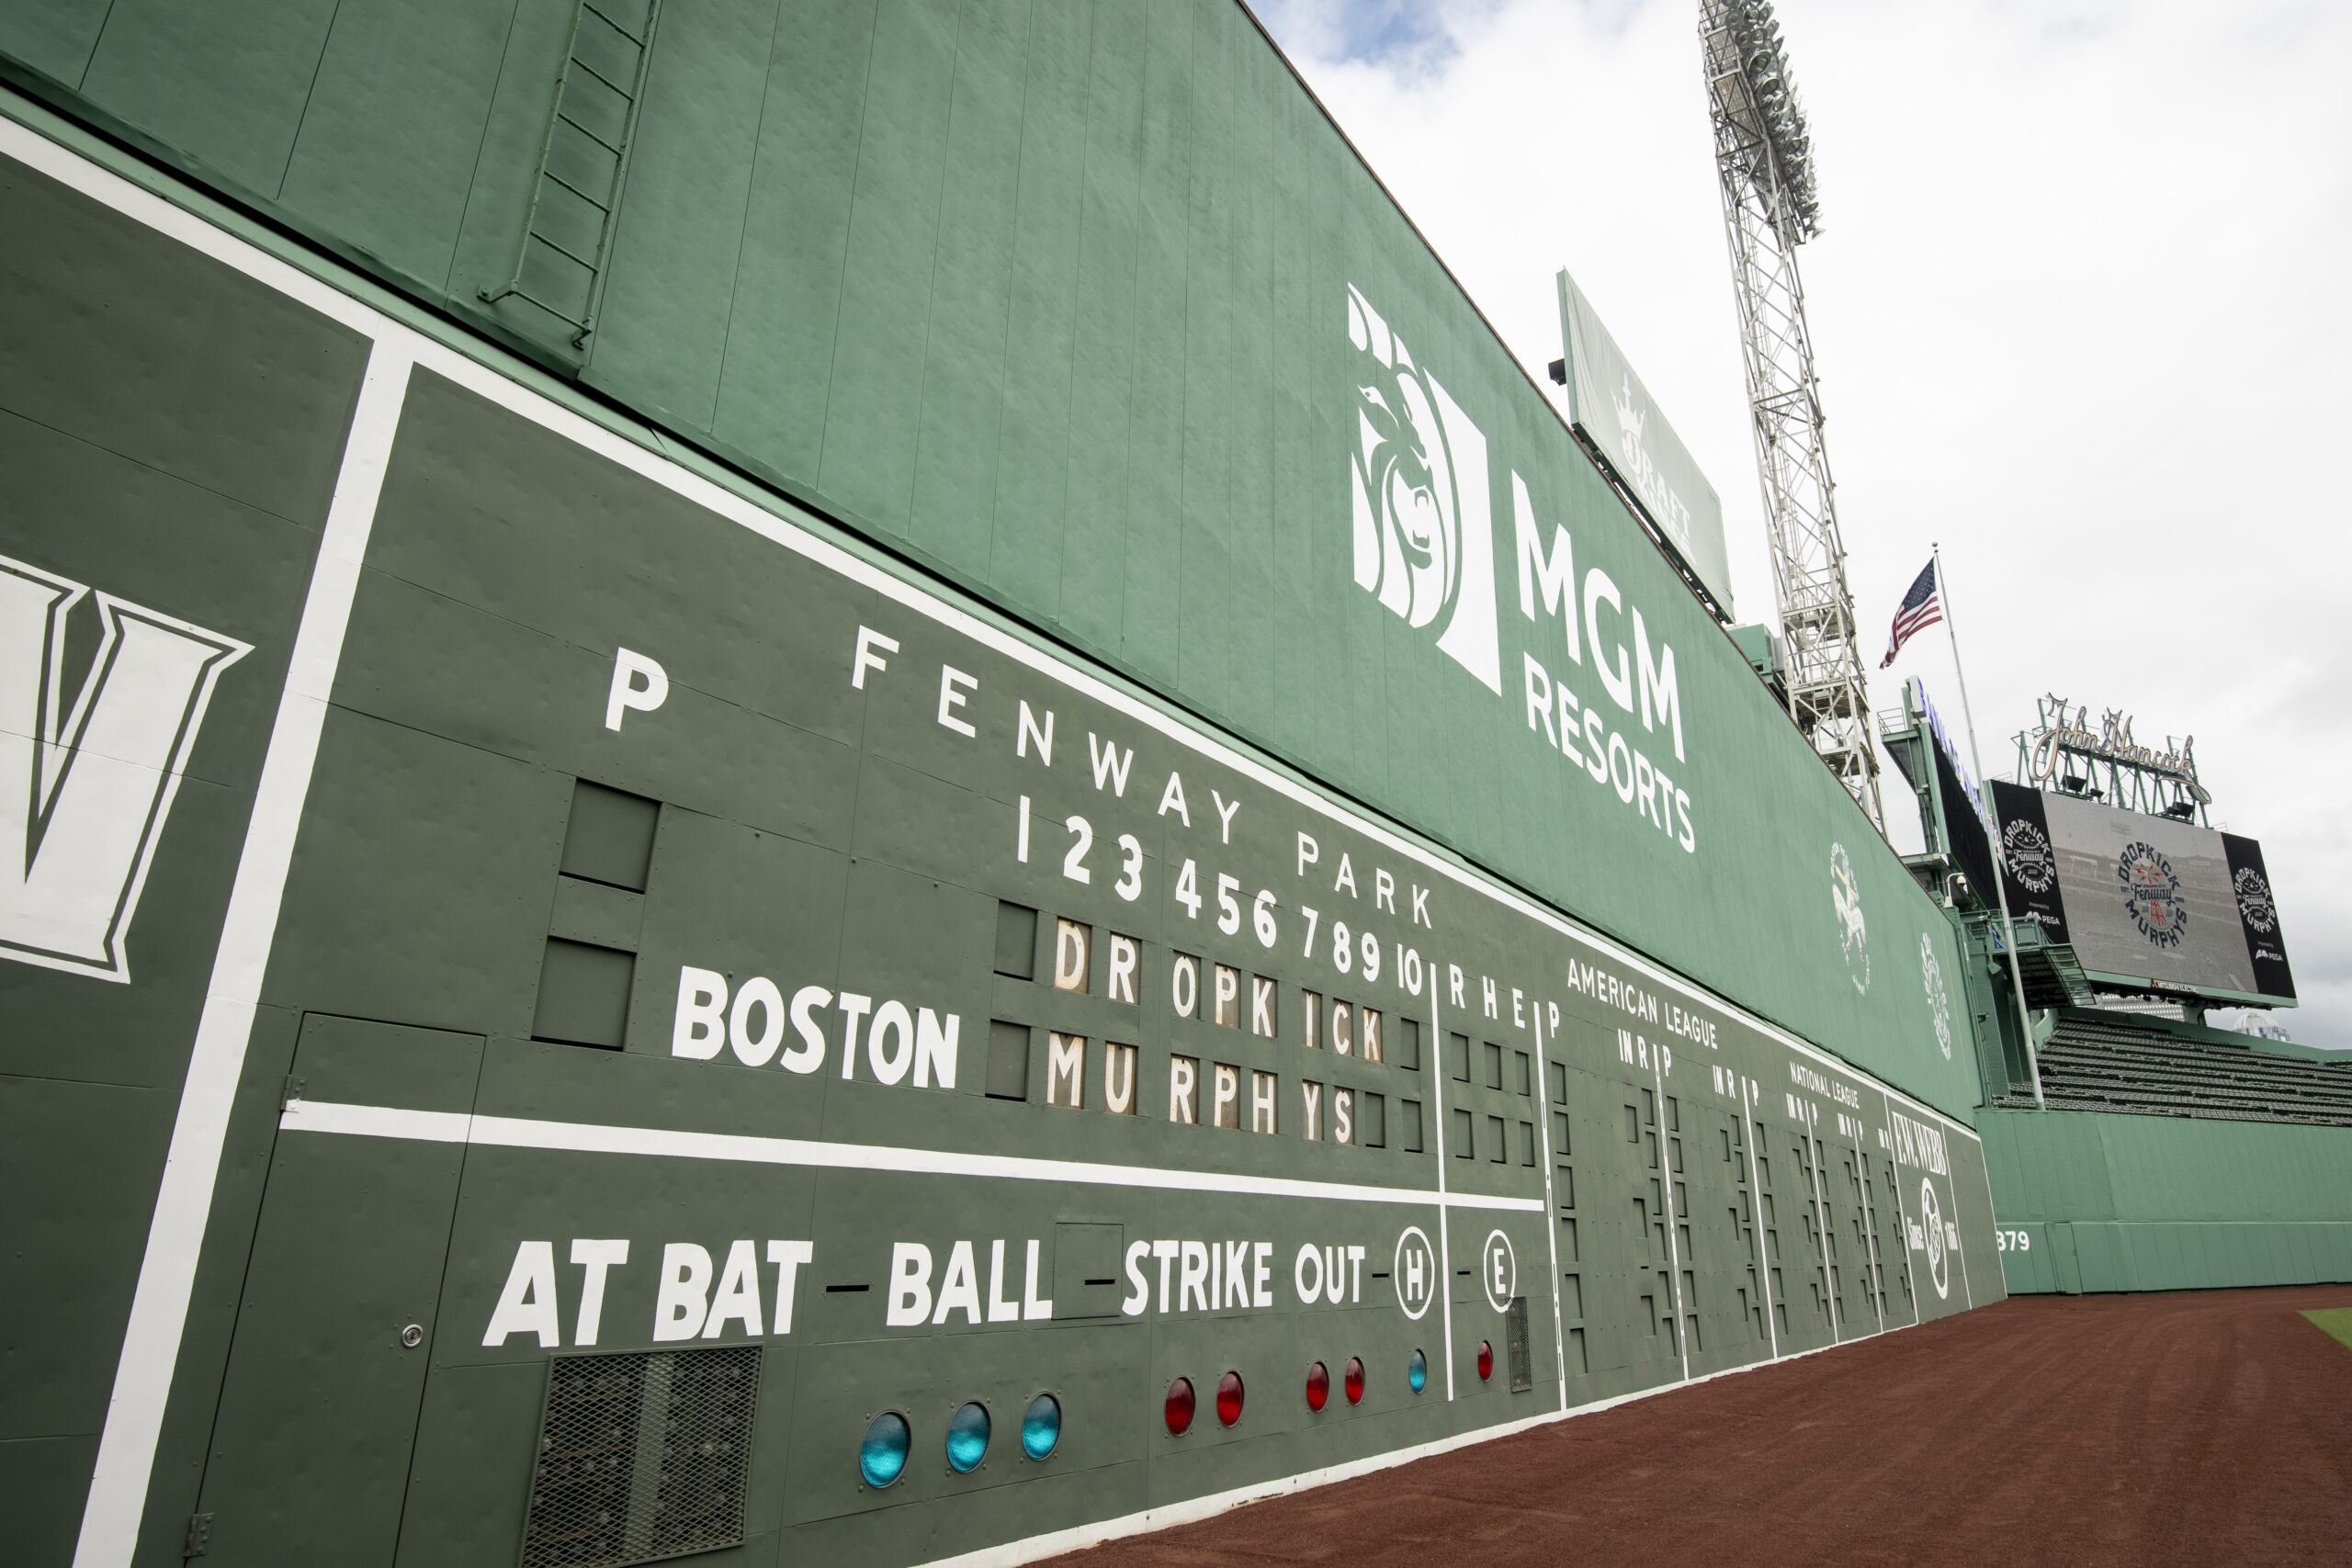 The Green Monster Scoreboard